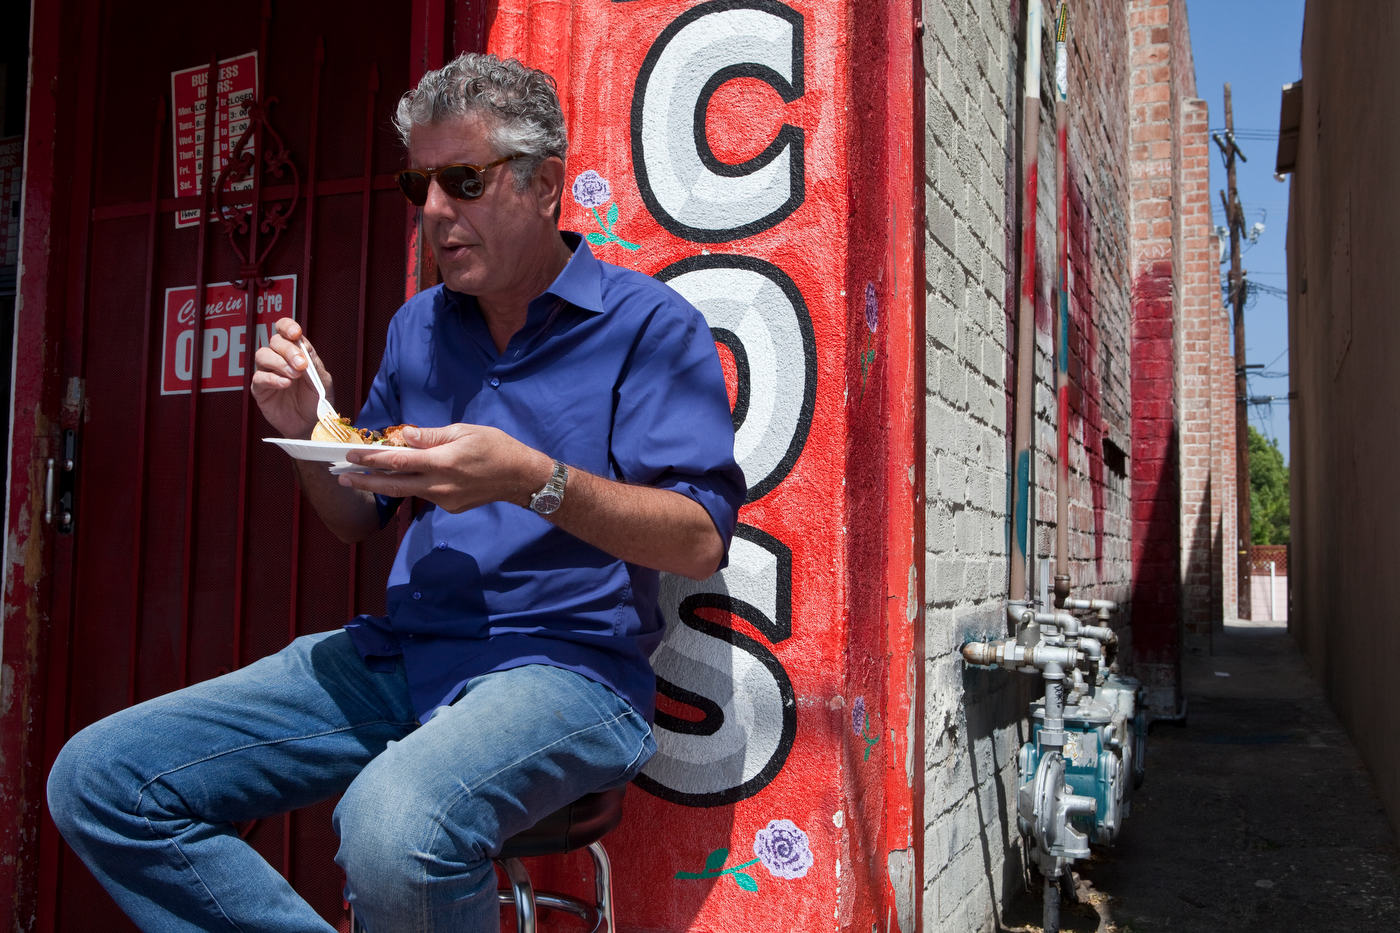 Anthony Bourdain, The Travel Channel.